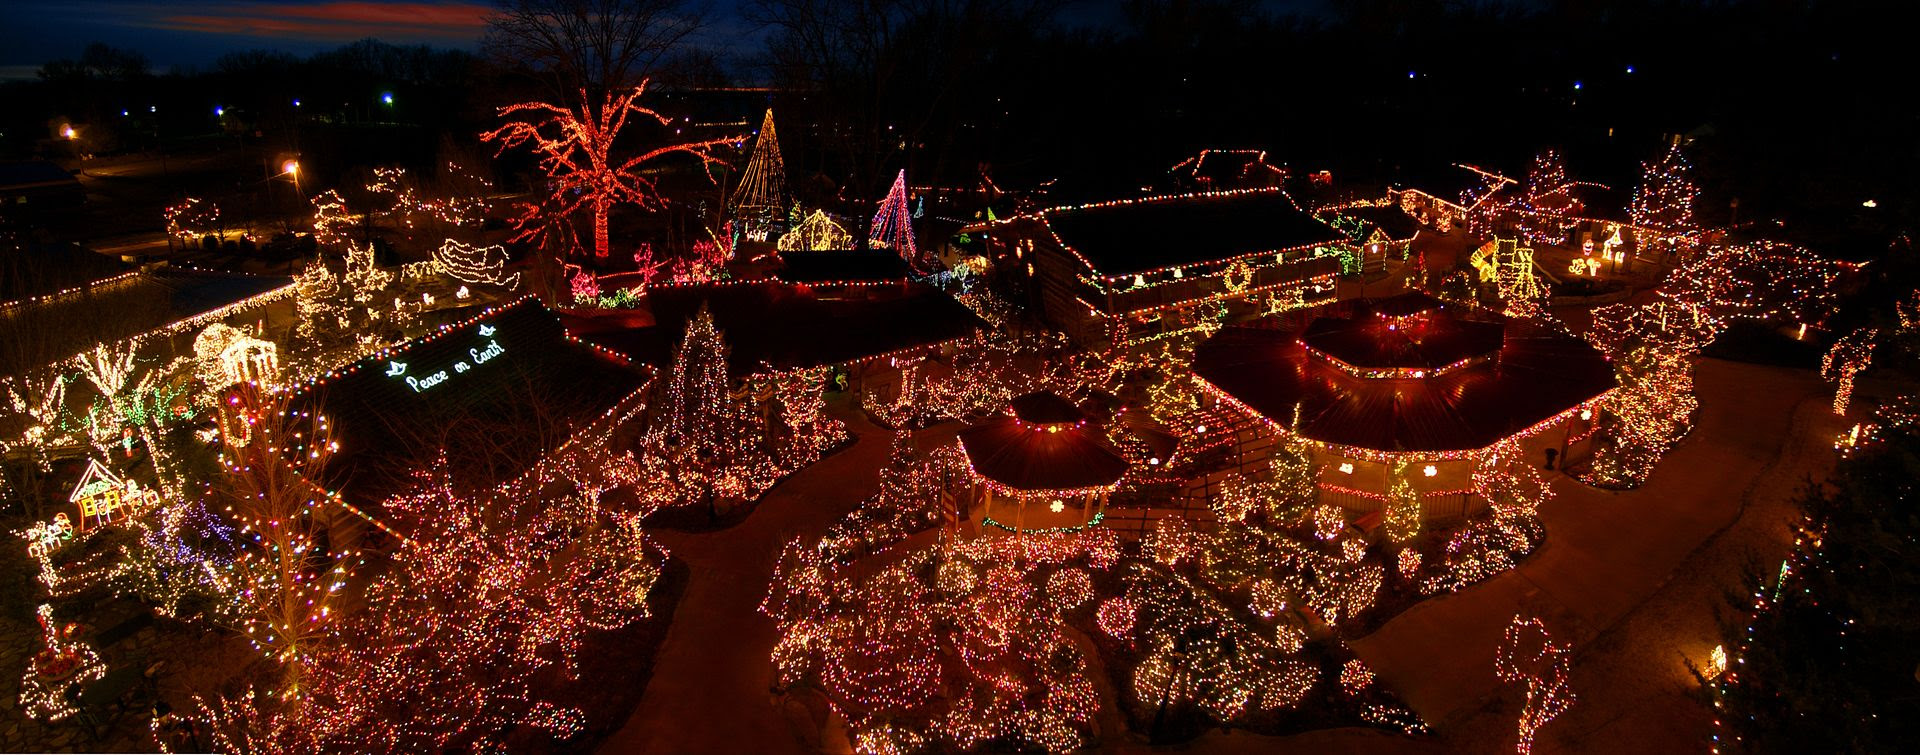 photo Grand Rivers Festival of Lights_zpsvu9vqejd.jpg